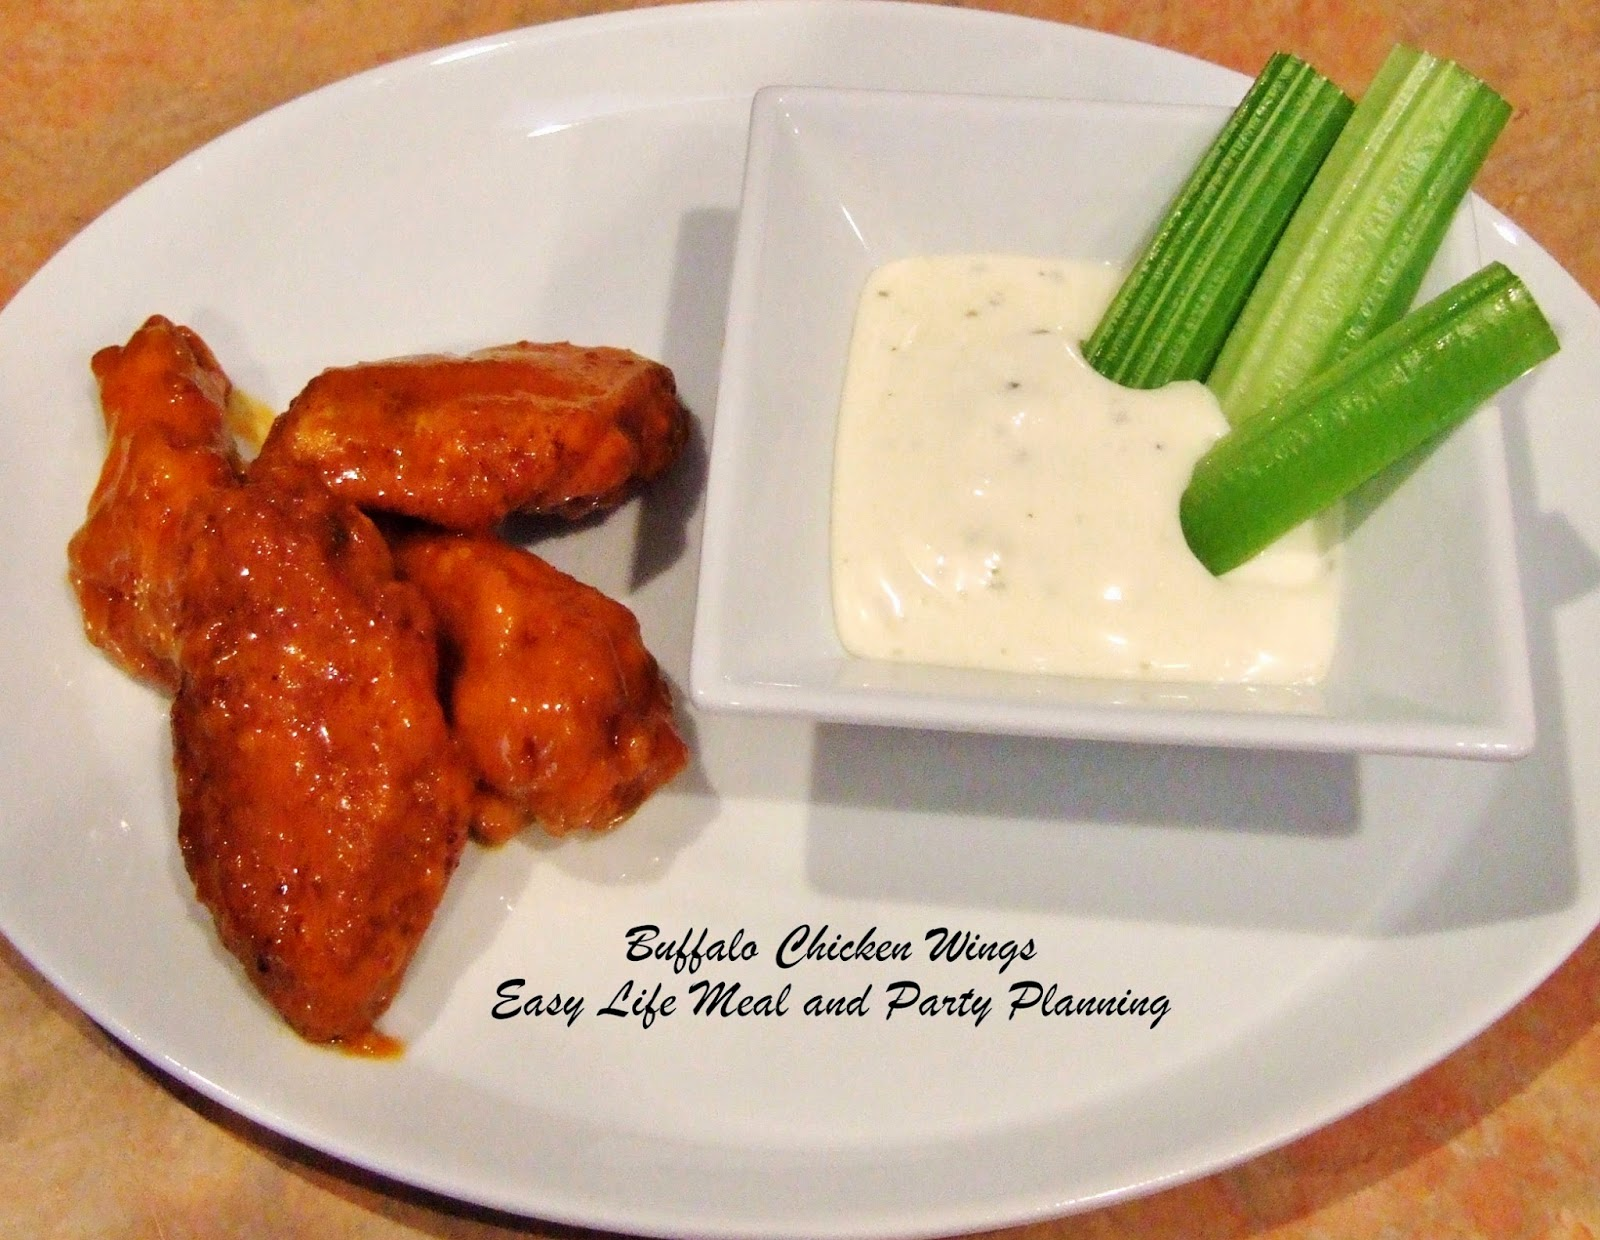 Buffalo Chicken Wings by Easy Life Meal and Party Planning  The best Buffalo Chicken Wing recipe out there. Easy to follow recipe. Tongue tantalizing taste.